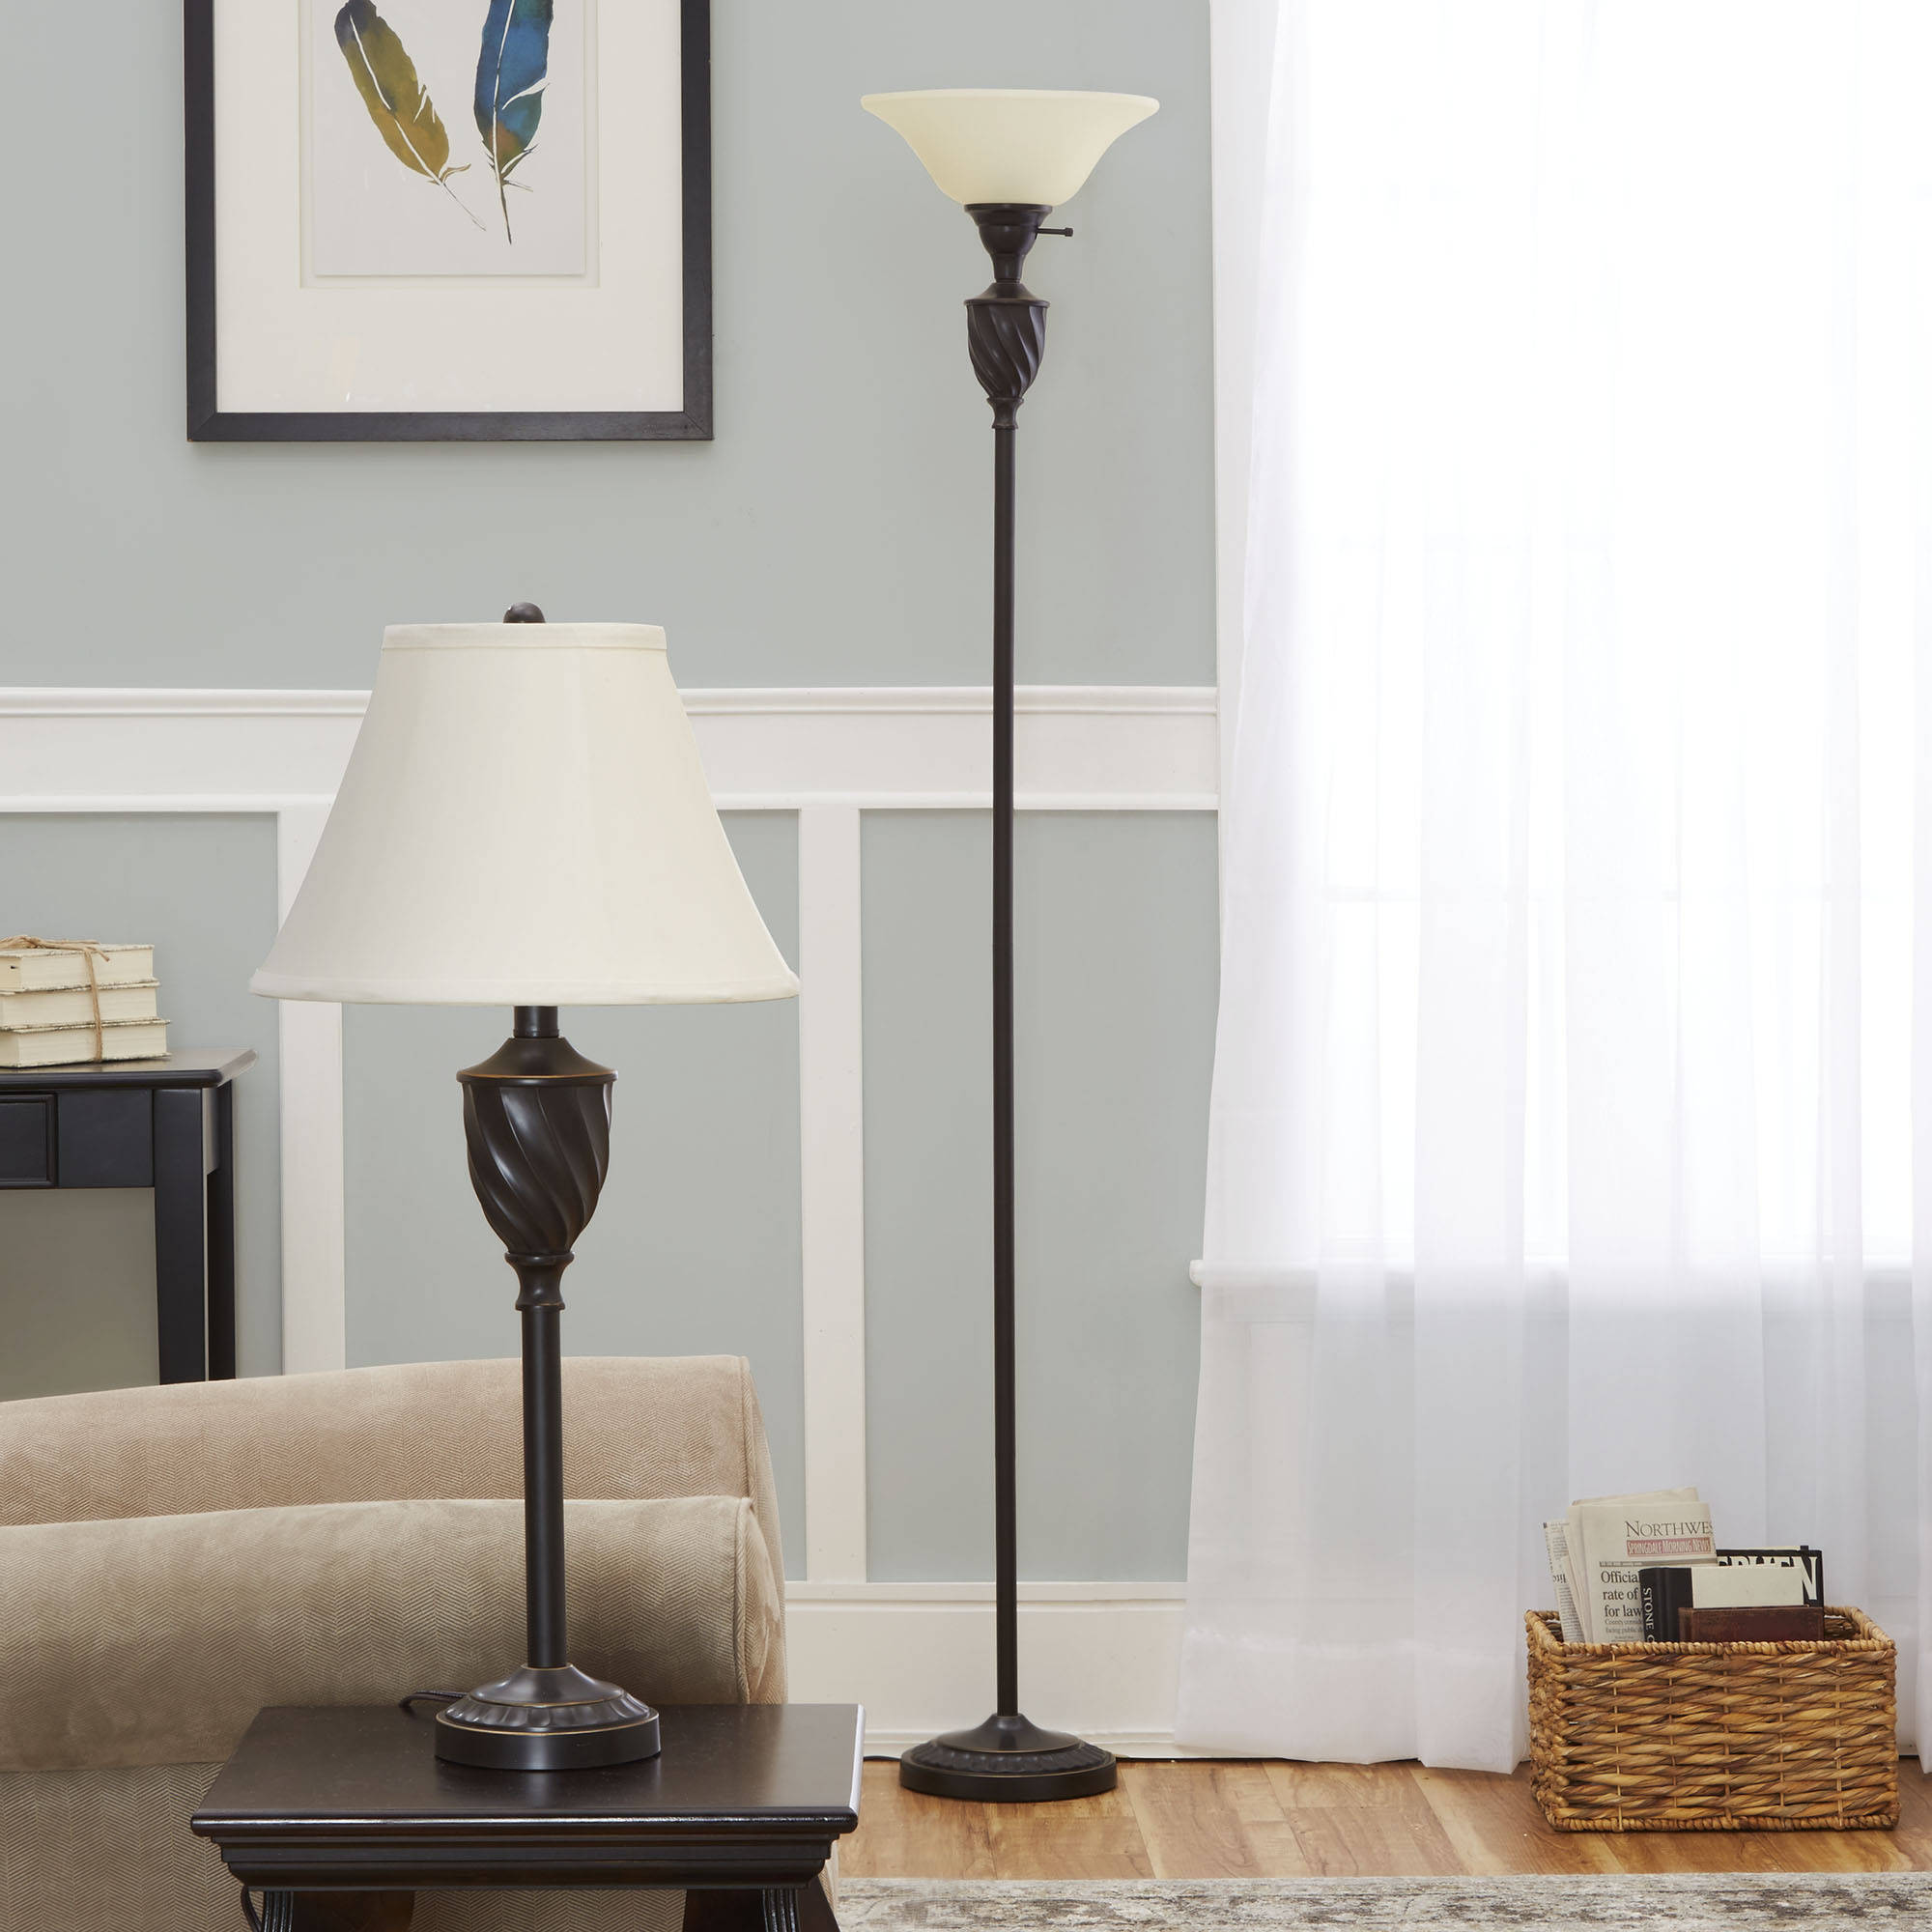 Mainstays Table and Floor L& Set with CFL Bulb Oil-Rubbed Bronze Finish - Walmart.com & Mainstays Table and Floor Lamp Set with CFL Bulb Oil-Rubbed Bronze ...